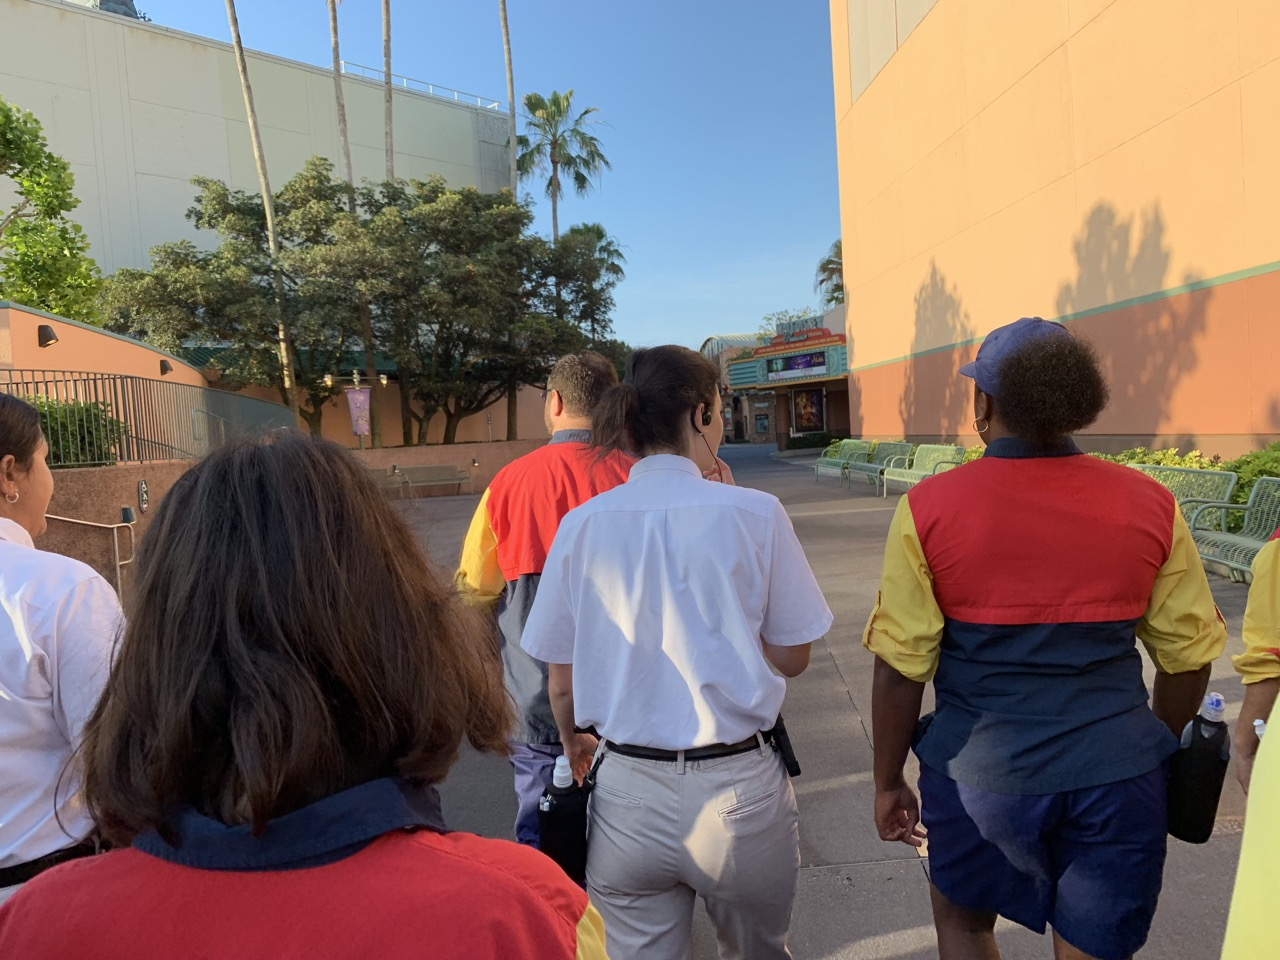 disney world trip report early summer 2019 day two 13 rope drop.jpeg